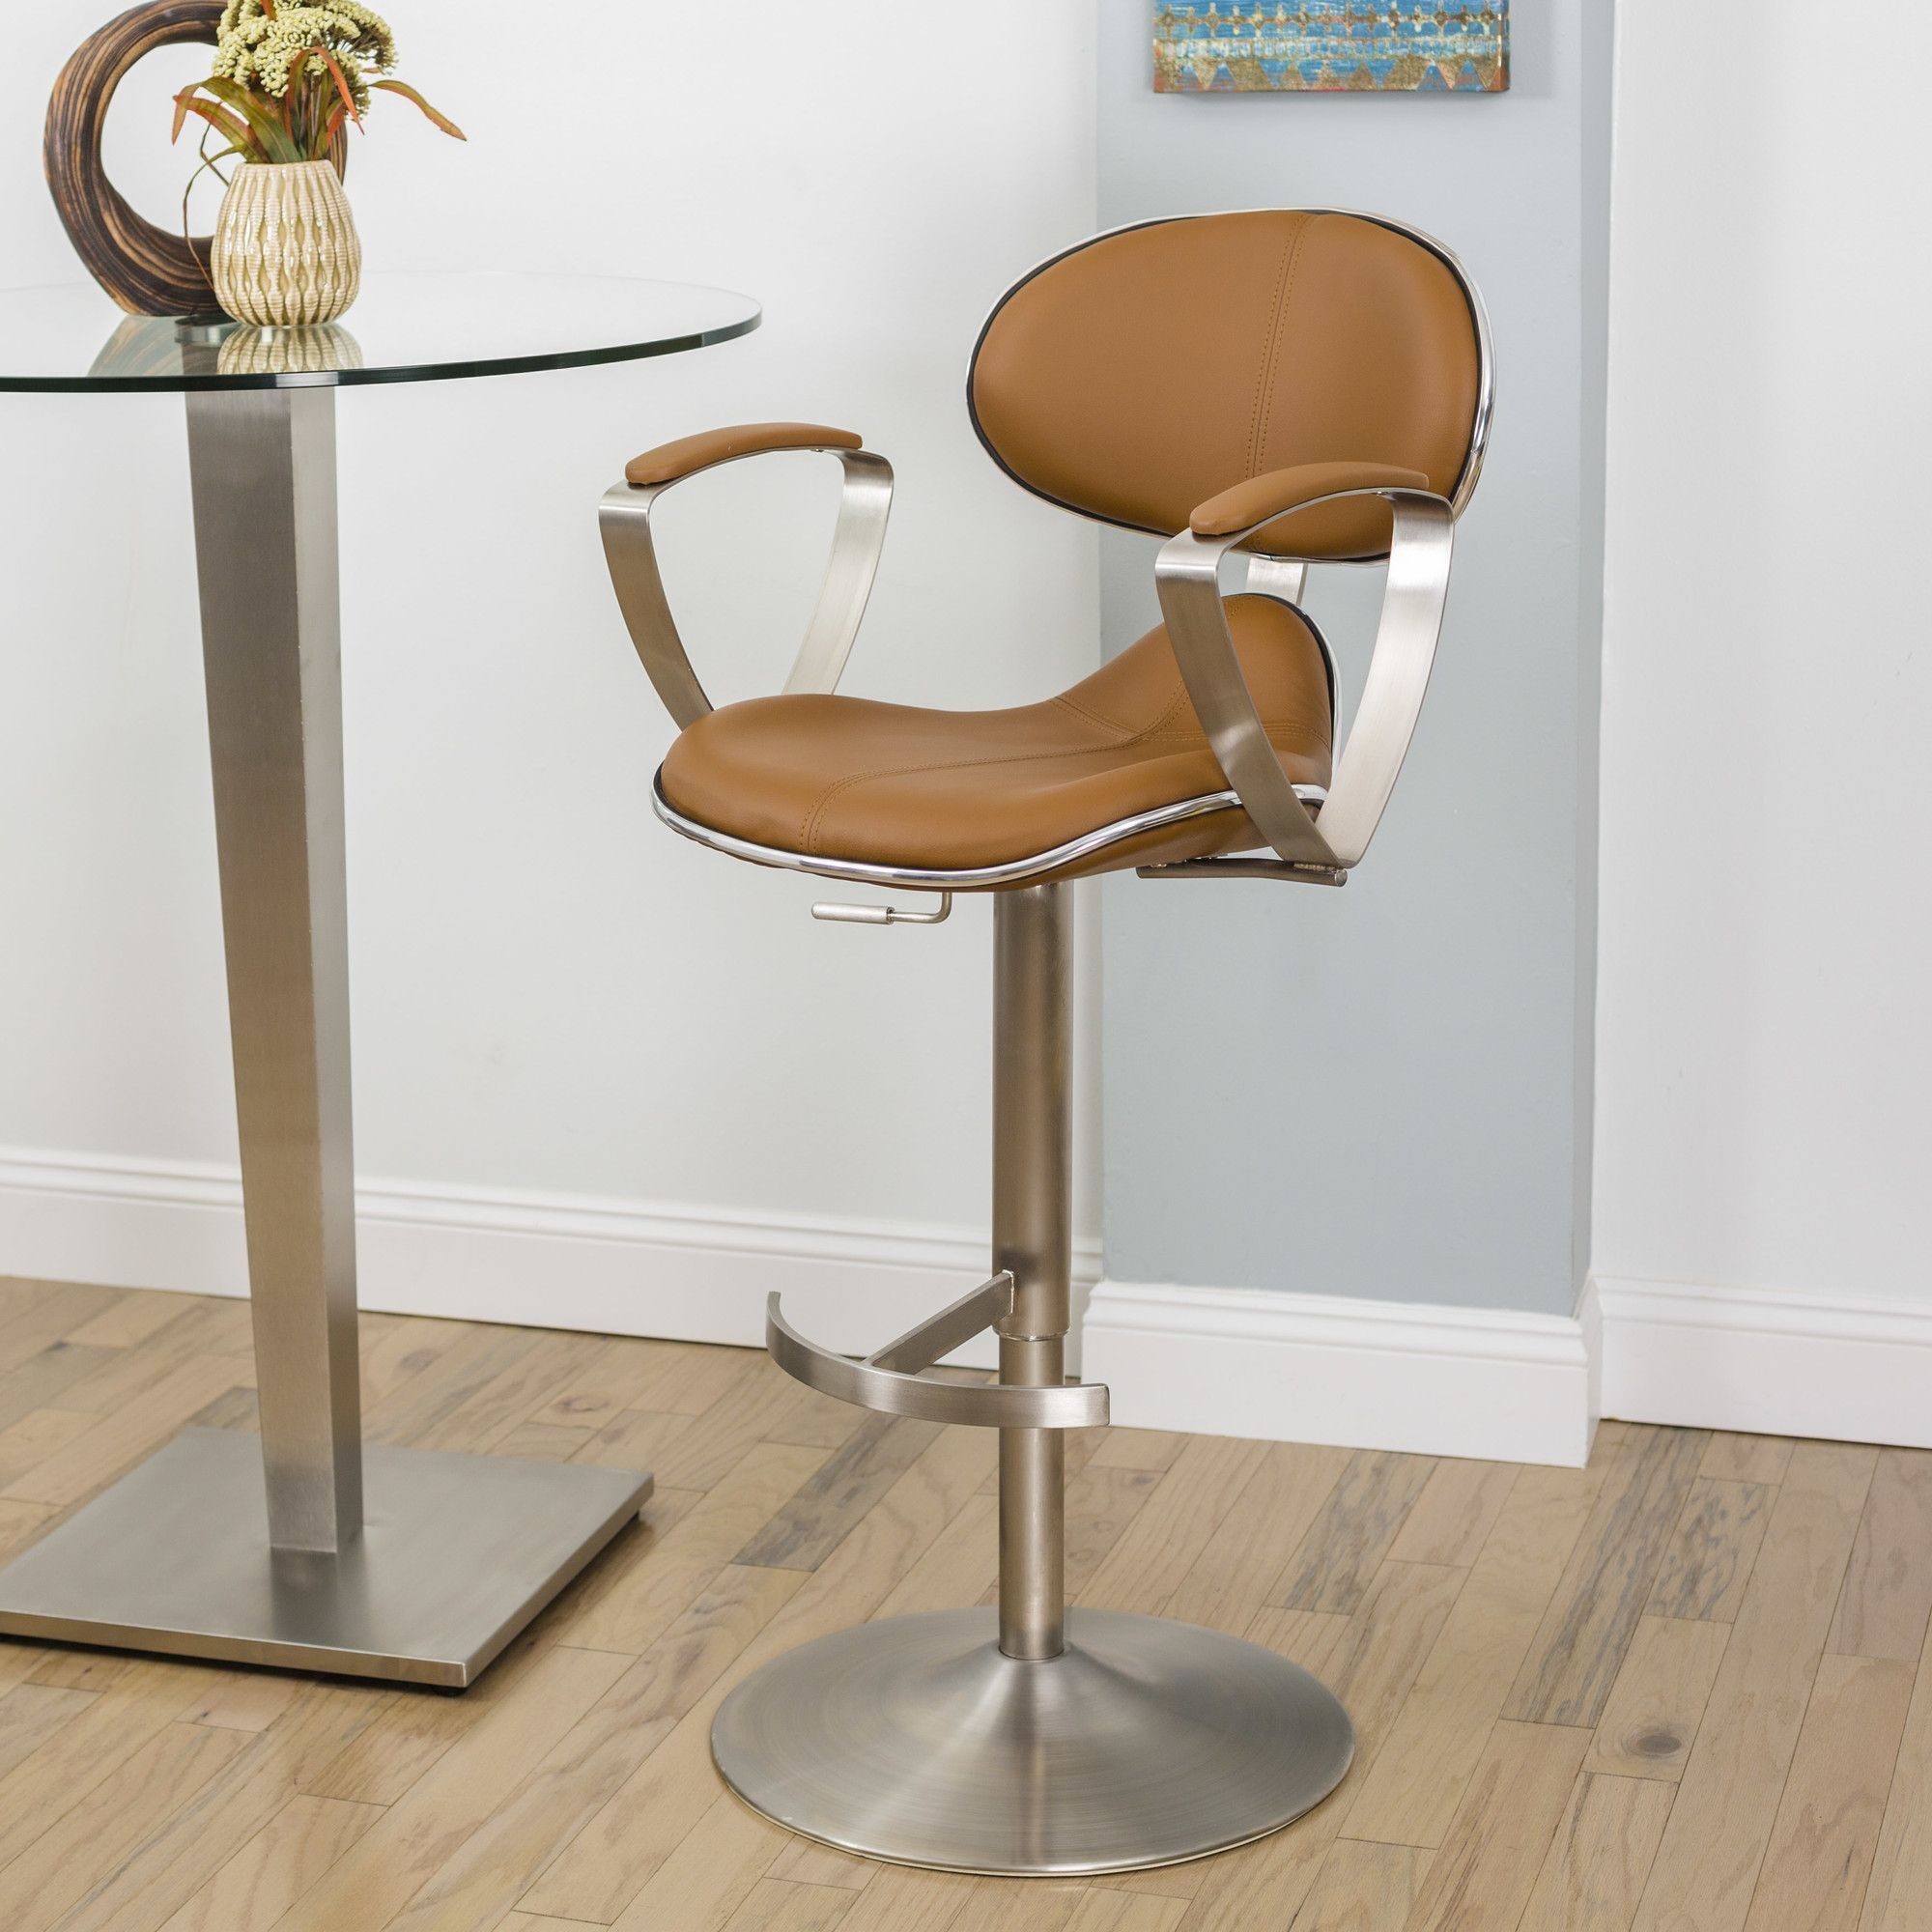 Jaylo Adjustable Height Swivel Bar Stool with Cushion